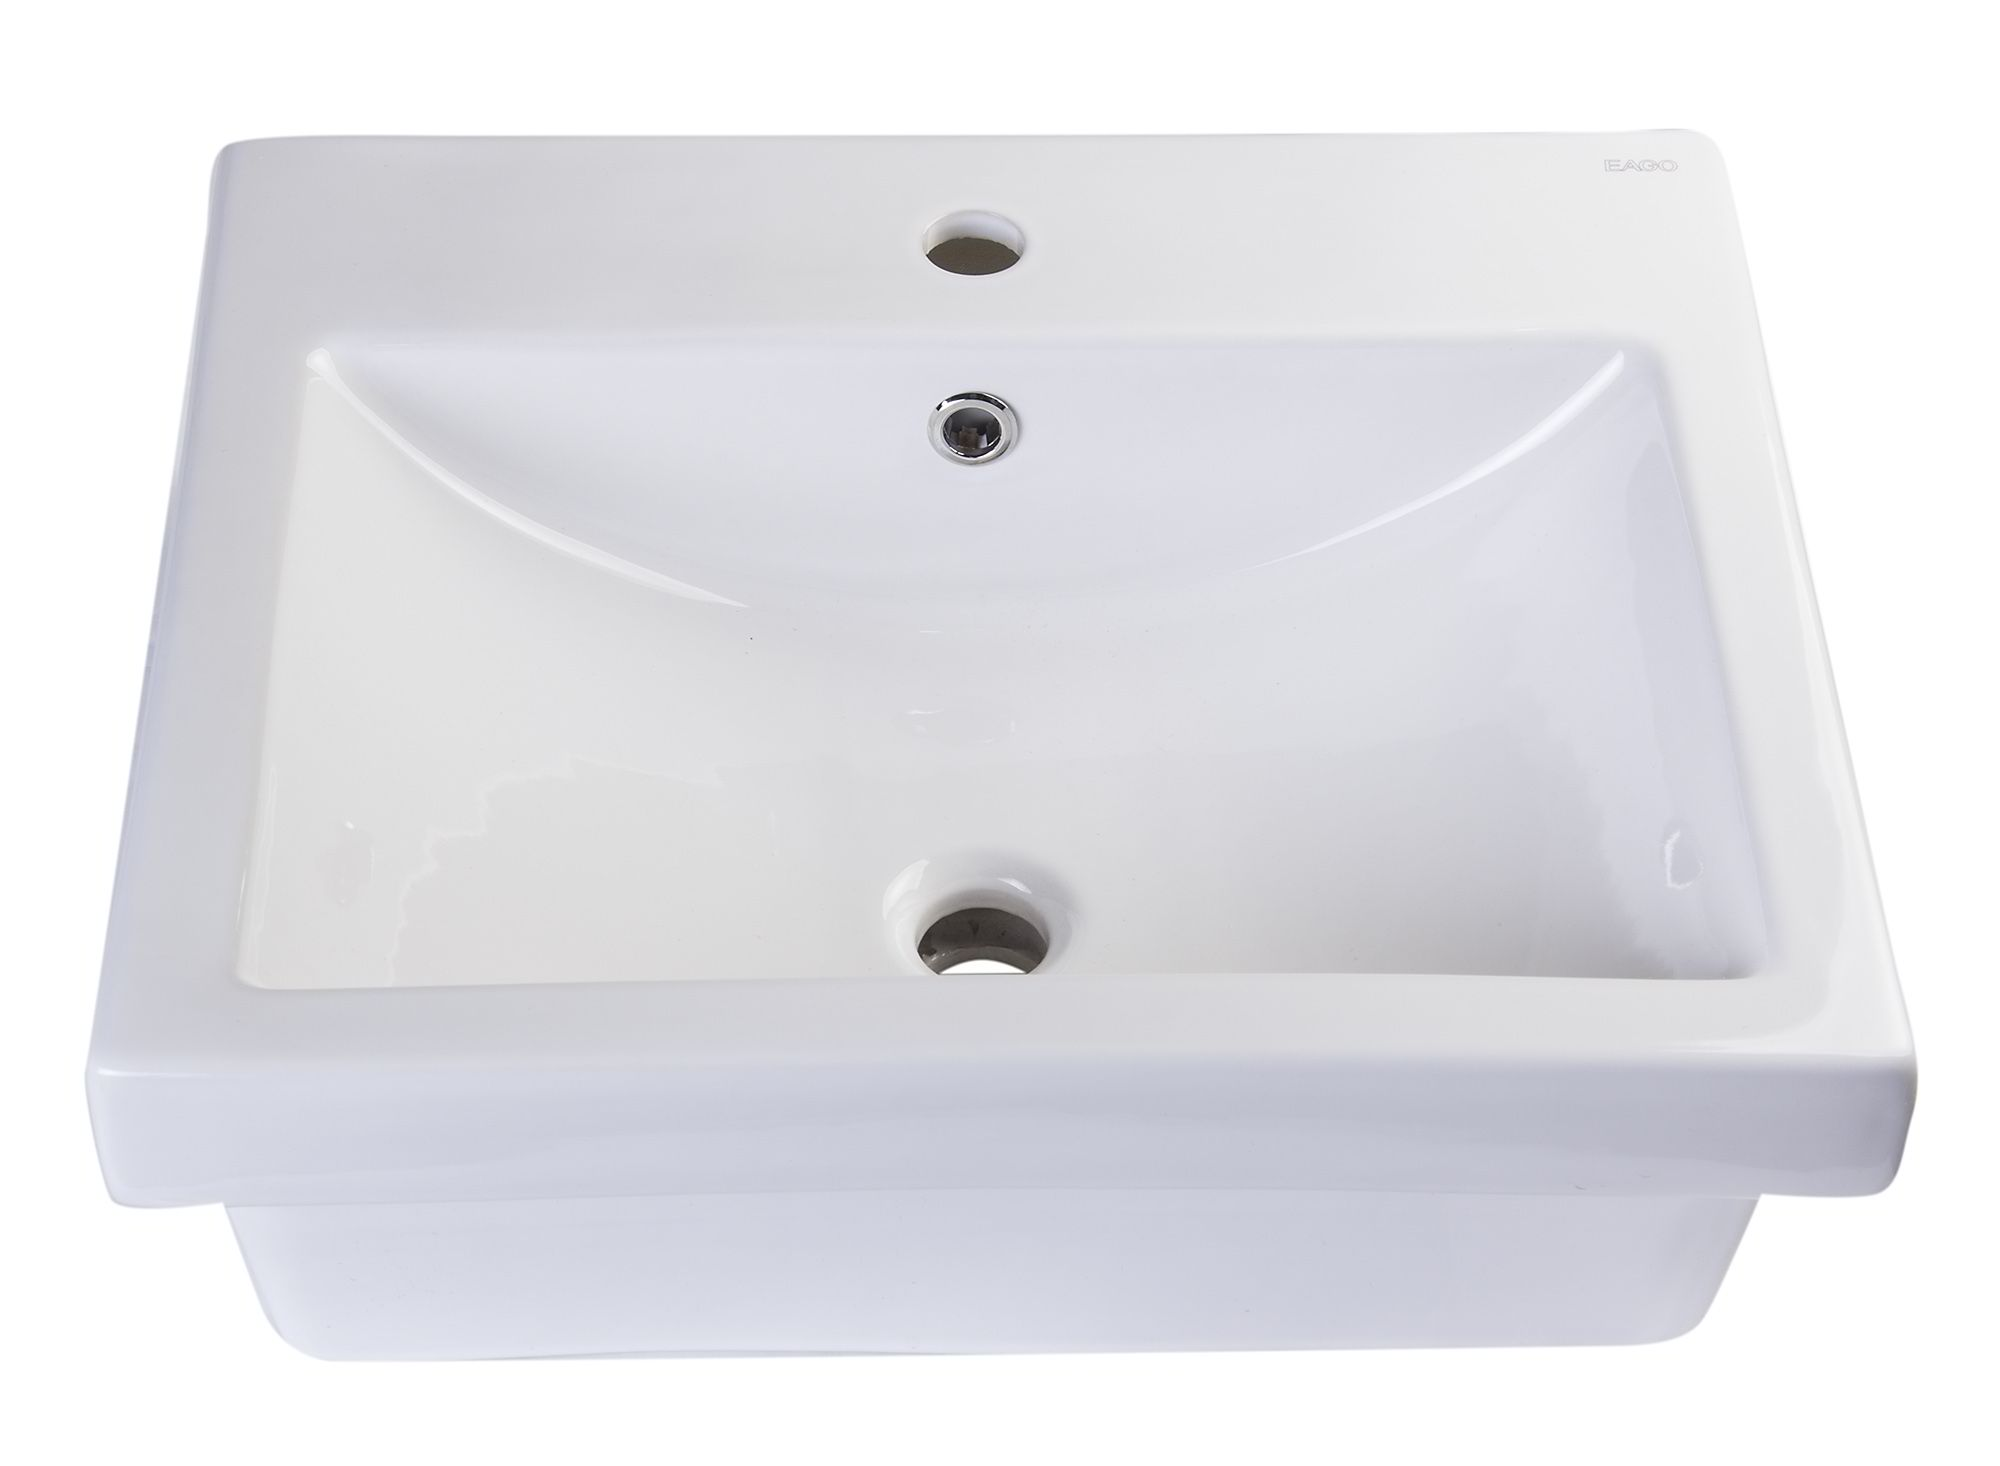 "EAGO BA134 21"" Rectangular Porcelain Bathroom Vessel Sink with Single Hole"